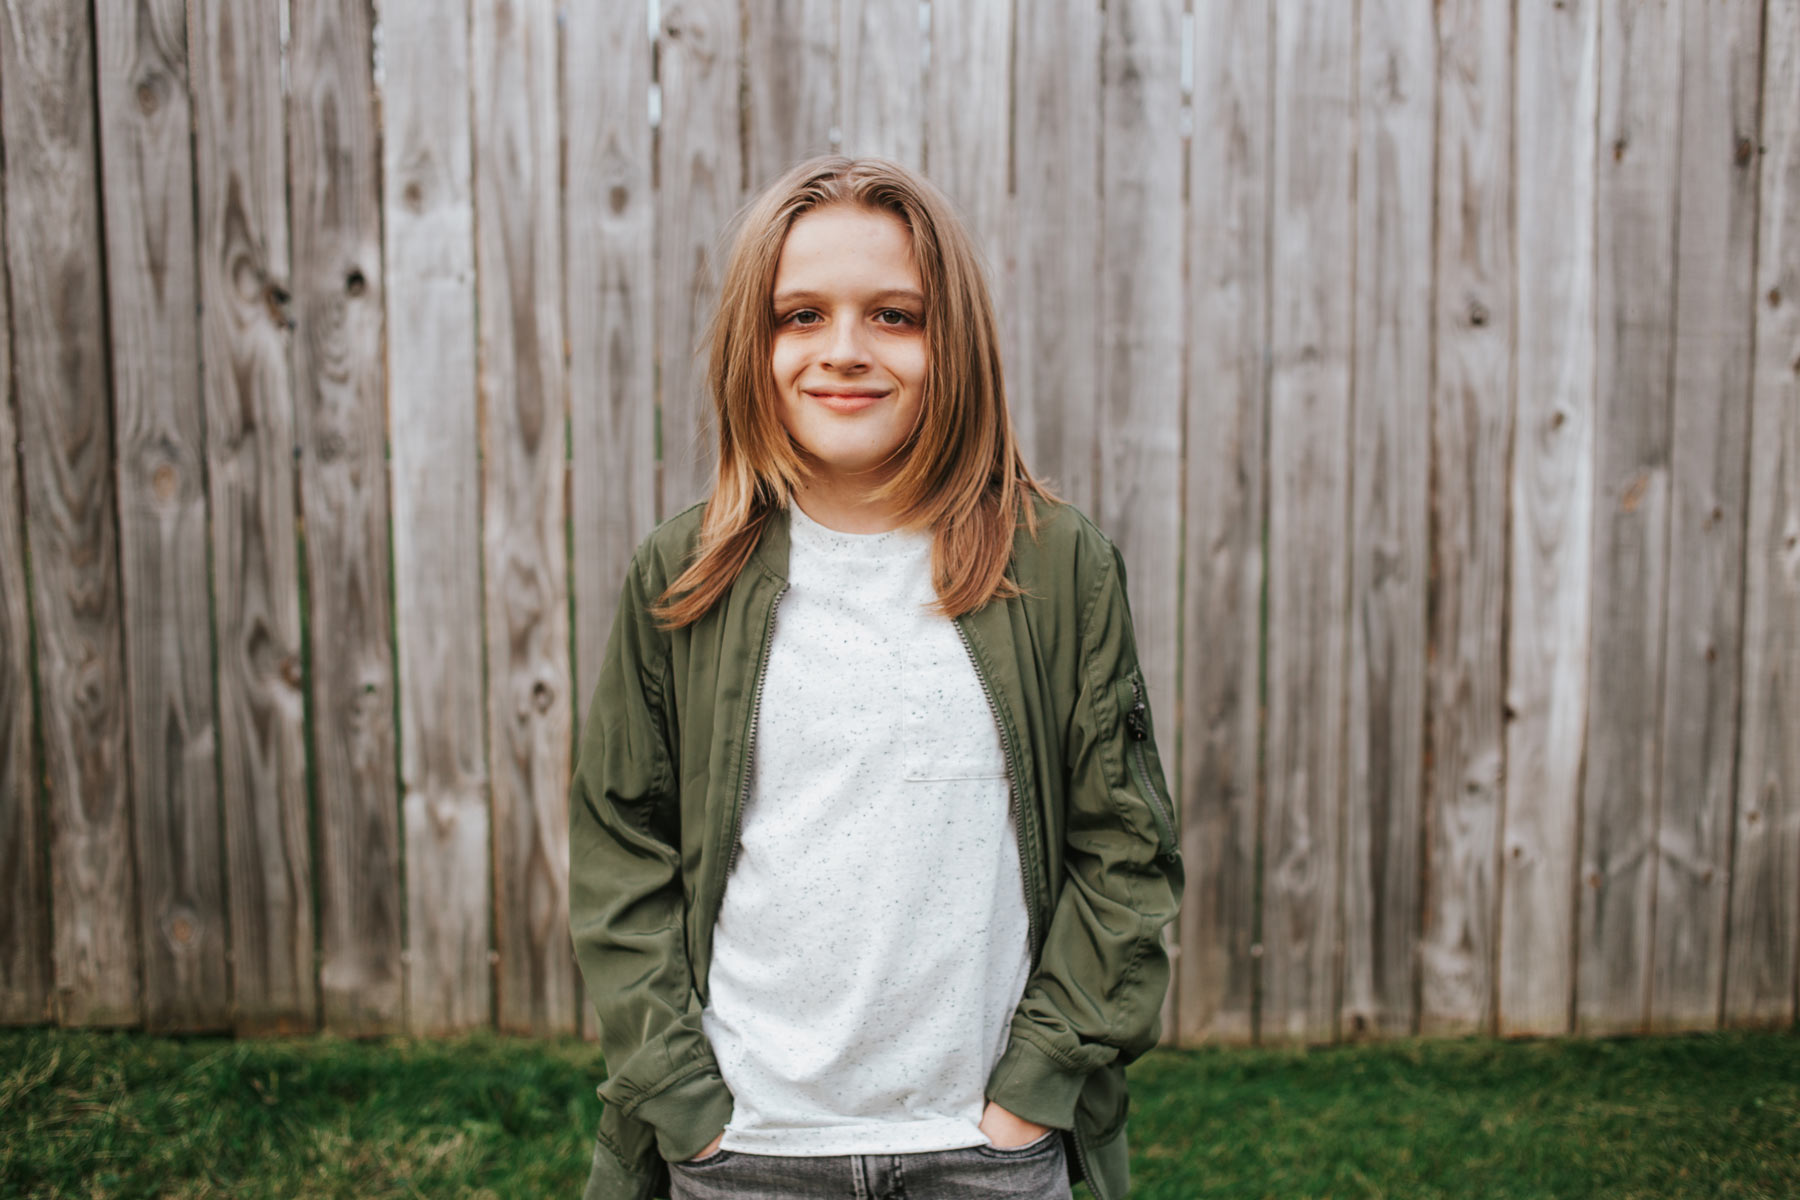 Evan Richards is a pre-teen white boy with long blonde hair and a broad smile. He is wearing a white shirt and an olive green jacket in an outside setting.